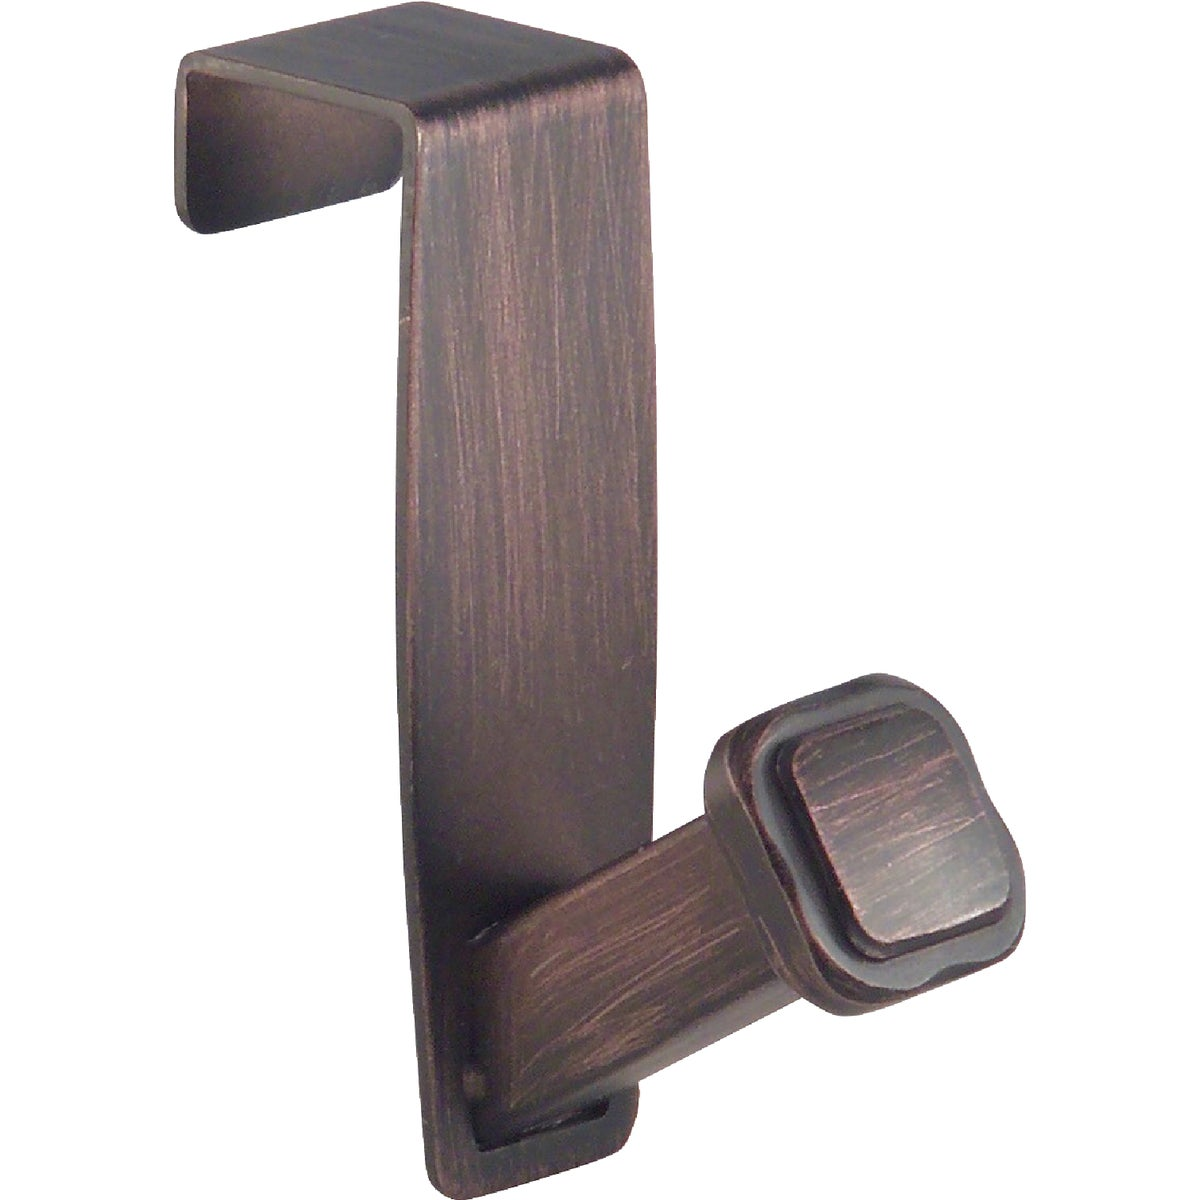 OVER CABINET PEG HOOK - 33571 by Interdesign Inc